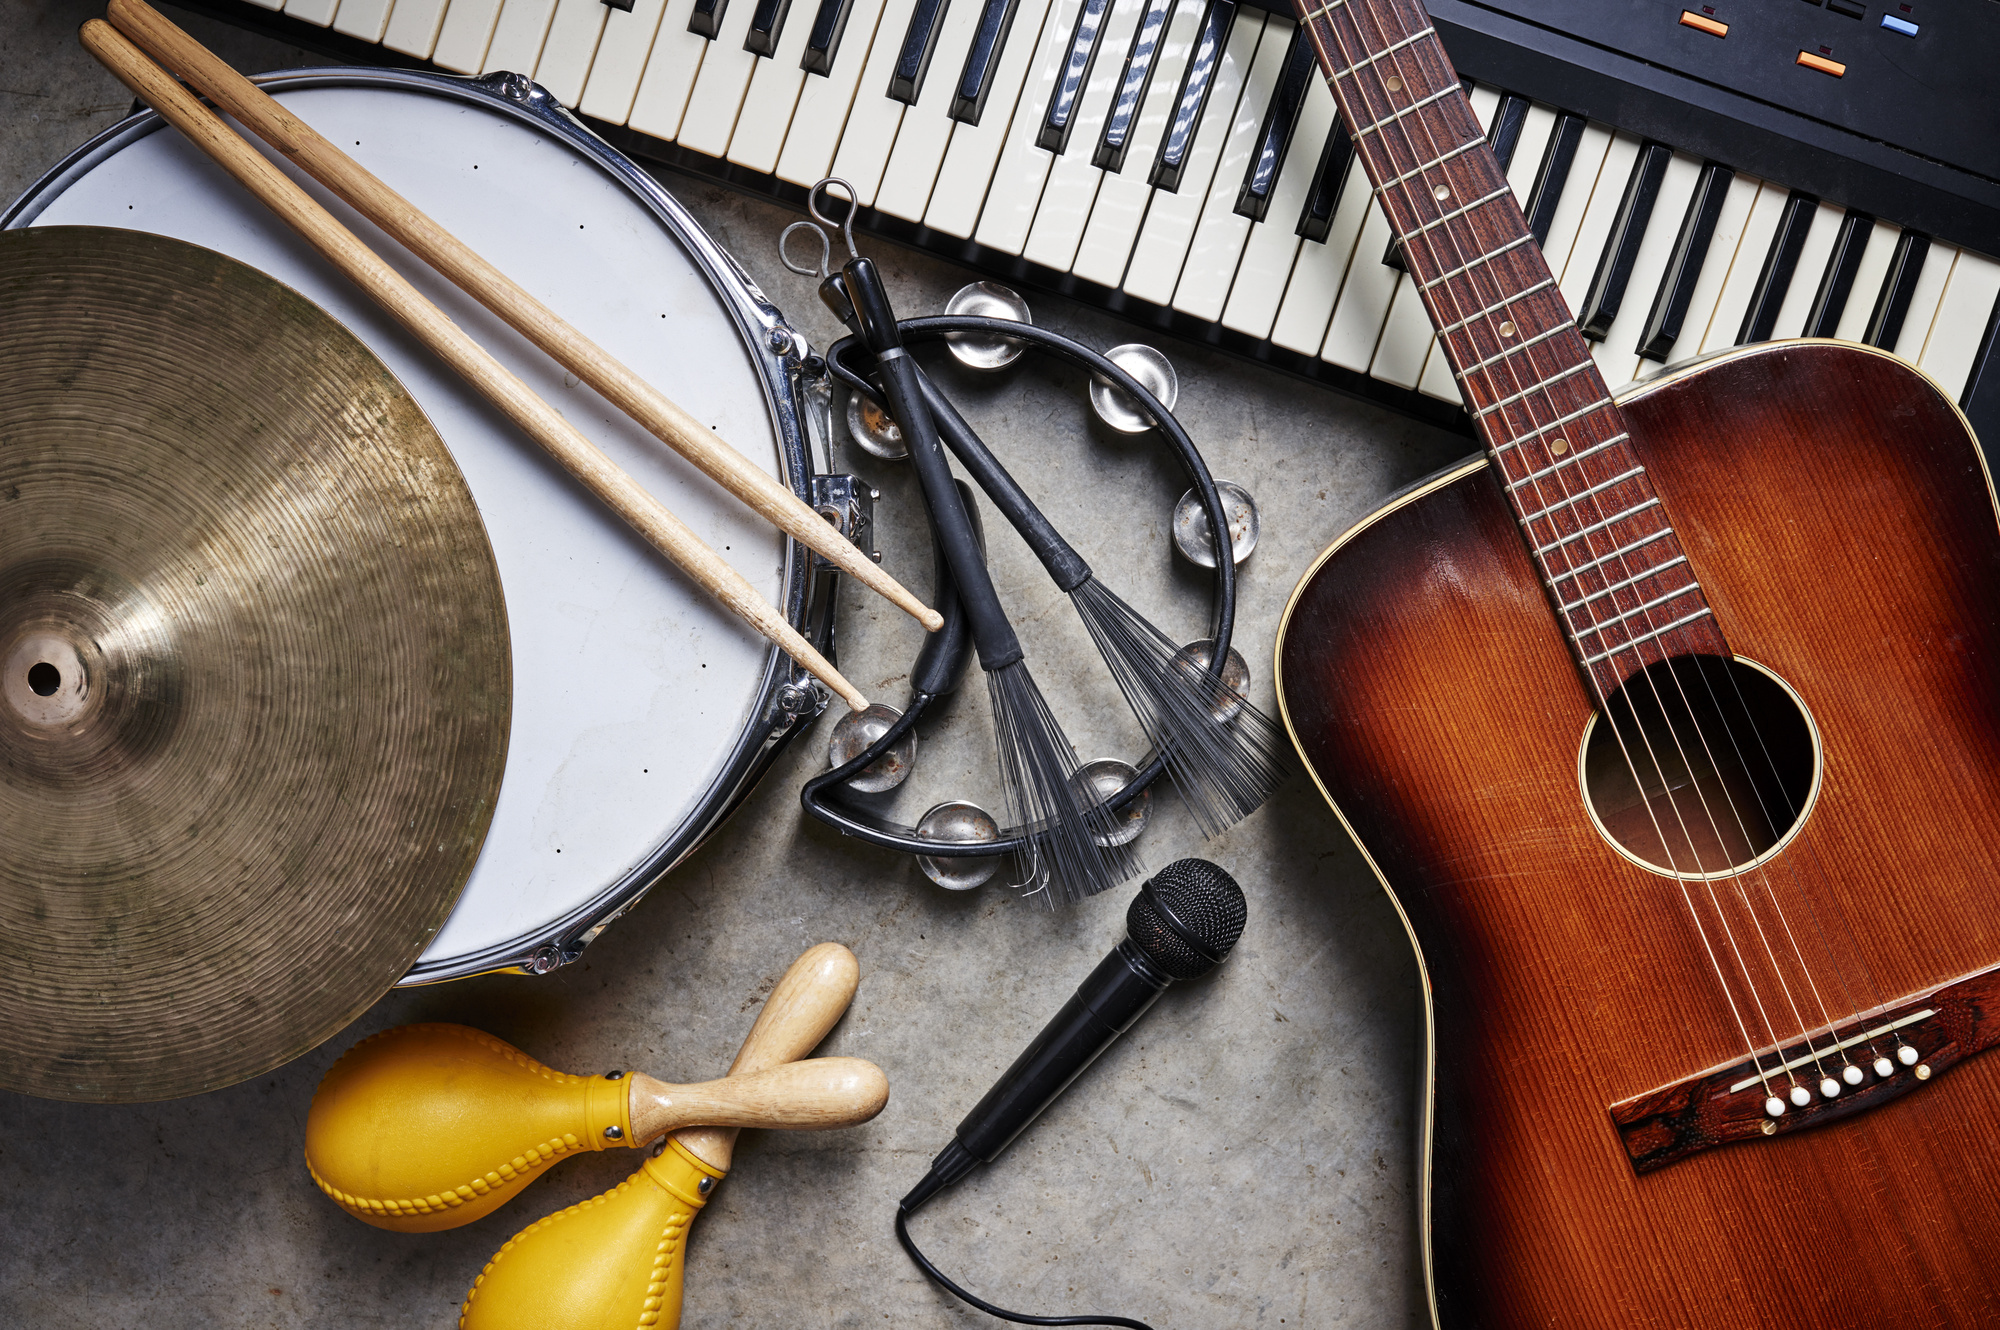 How to Choose a Musical Instrument to Play as an Adult